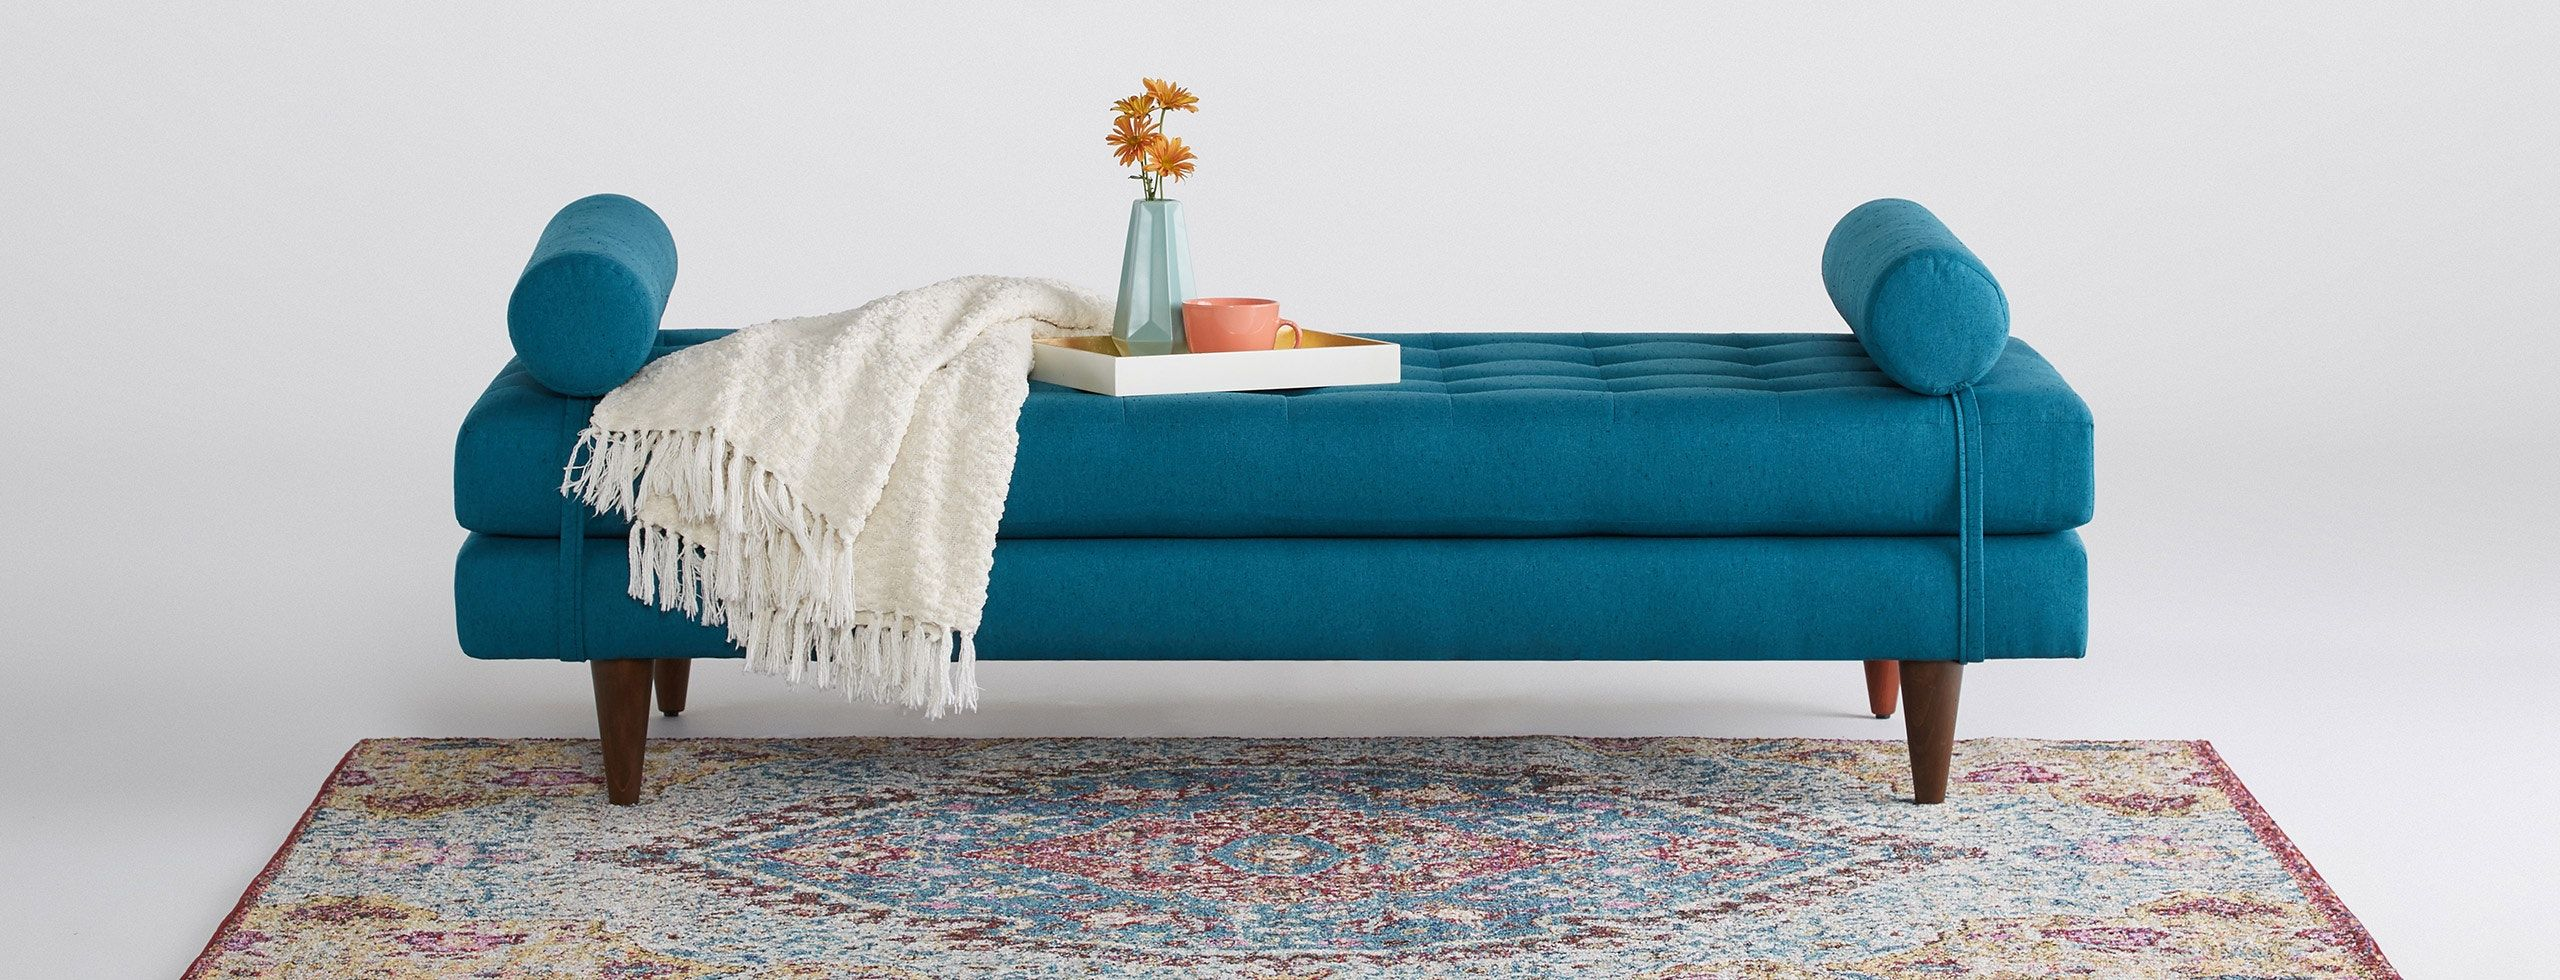 11 chic daybeds for your guest room